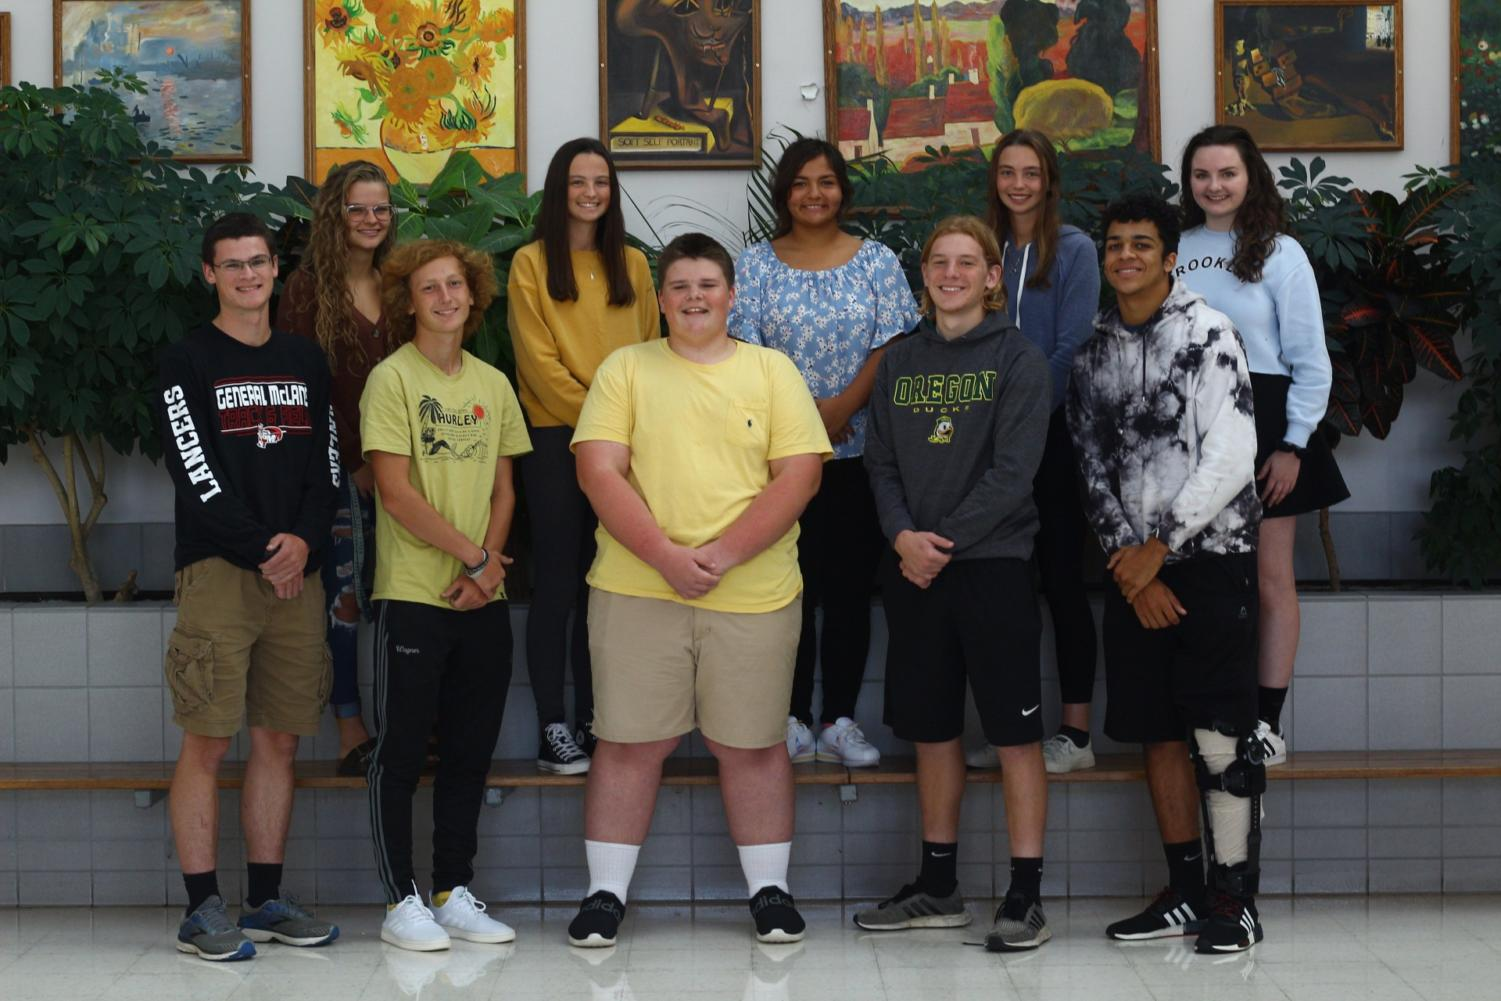 Tim Fair, Sam Wagner, Carter Willis, Jack Mennow, Ben Howe-Jones, Rachel Lesko, Amy Patterson, Della Mamani, Christine Patterson, and Cassidy Comer are the seniors voted to this year's Homecoming Court.